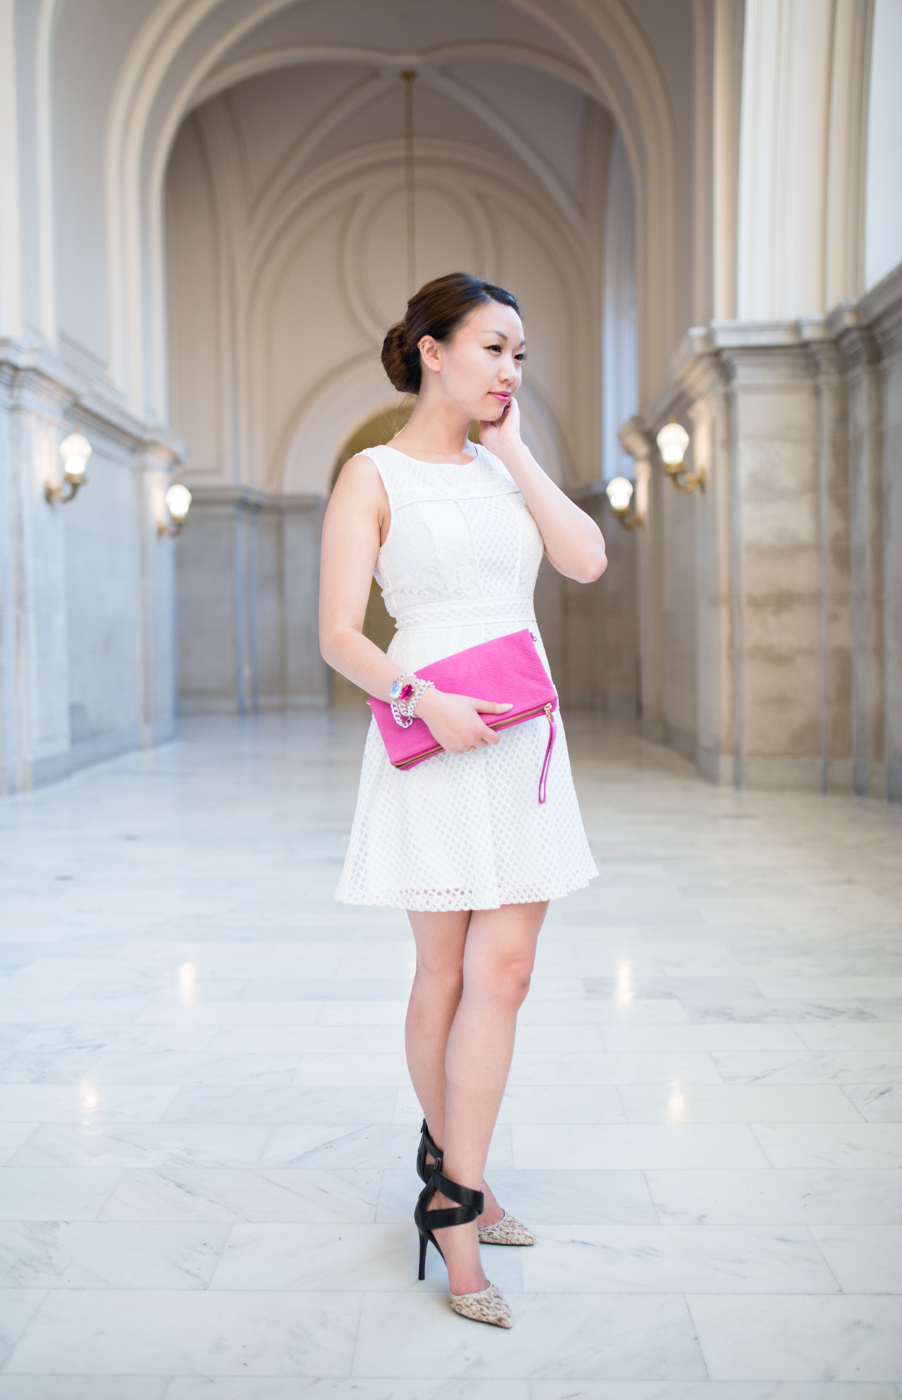 White lace dress | The Chic Diary